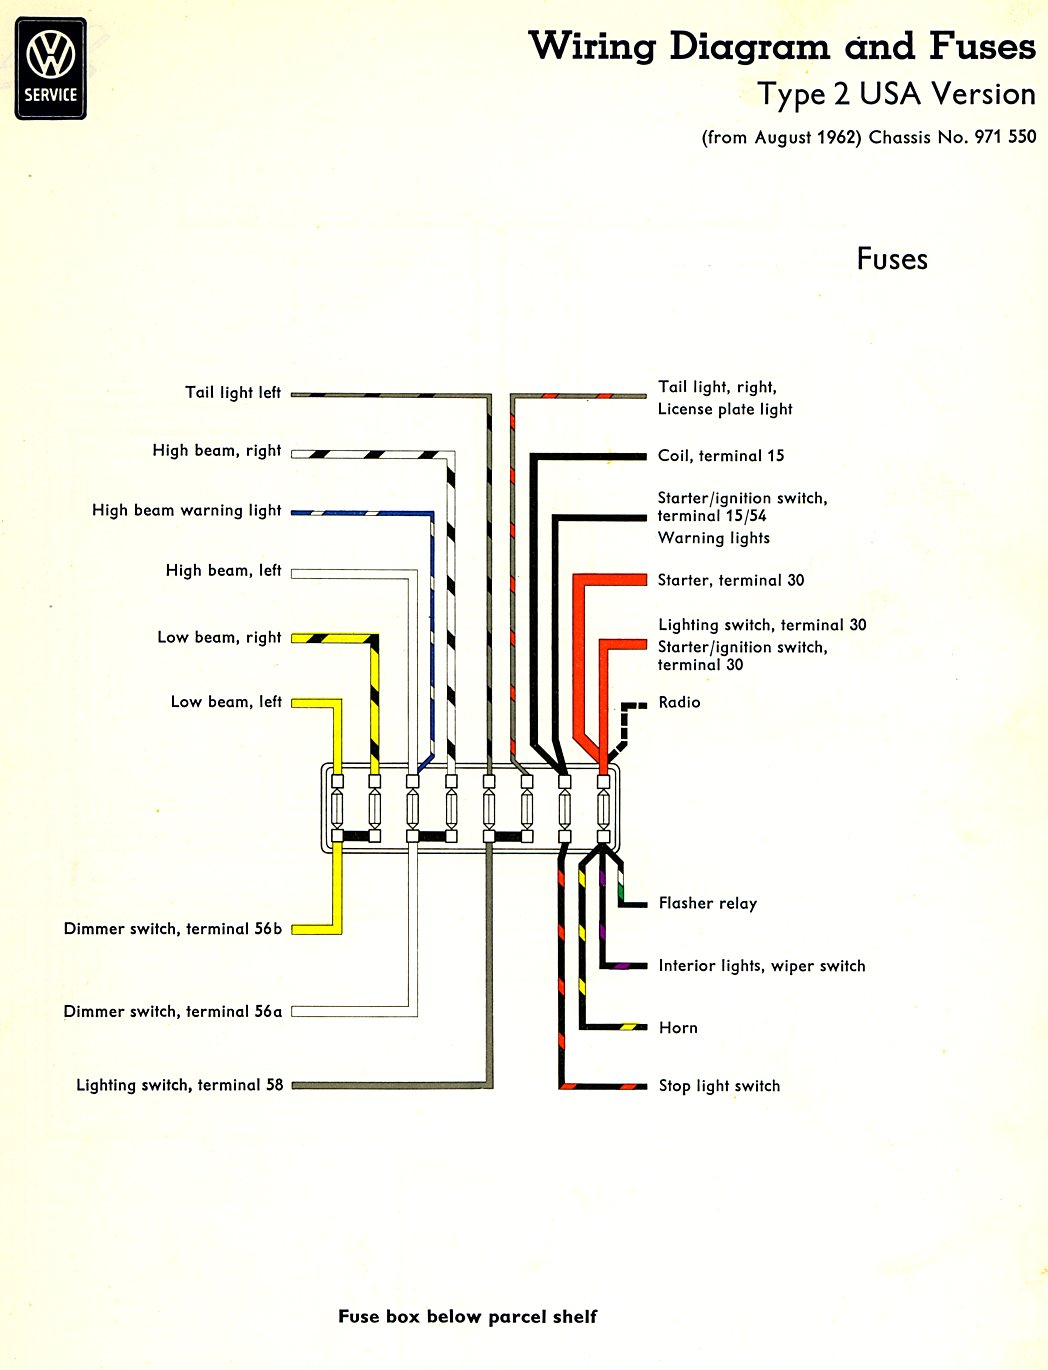 Type 2 Wiring Diagrams Series Circuit Schematic Get Free Image About Diagram